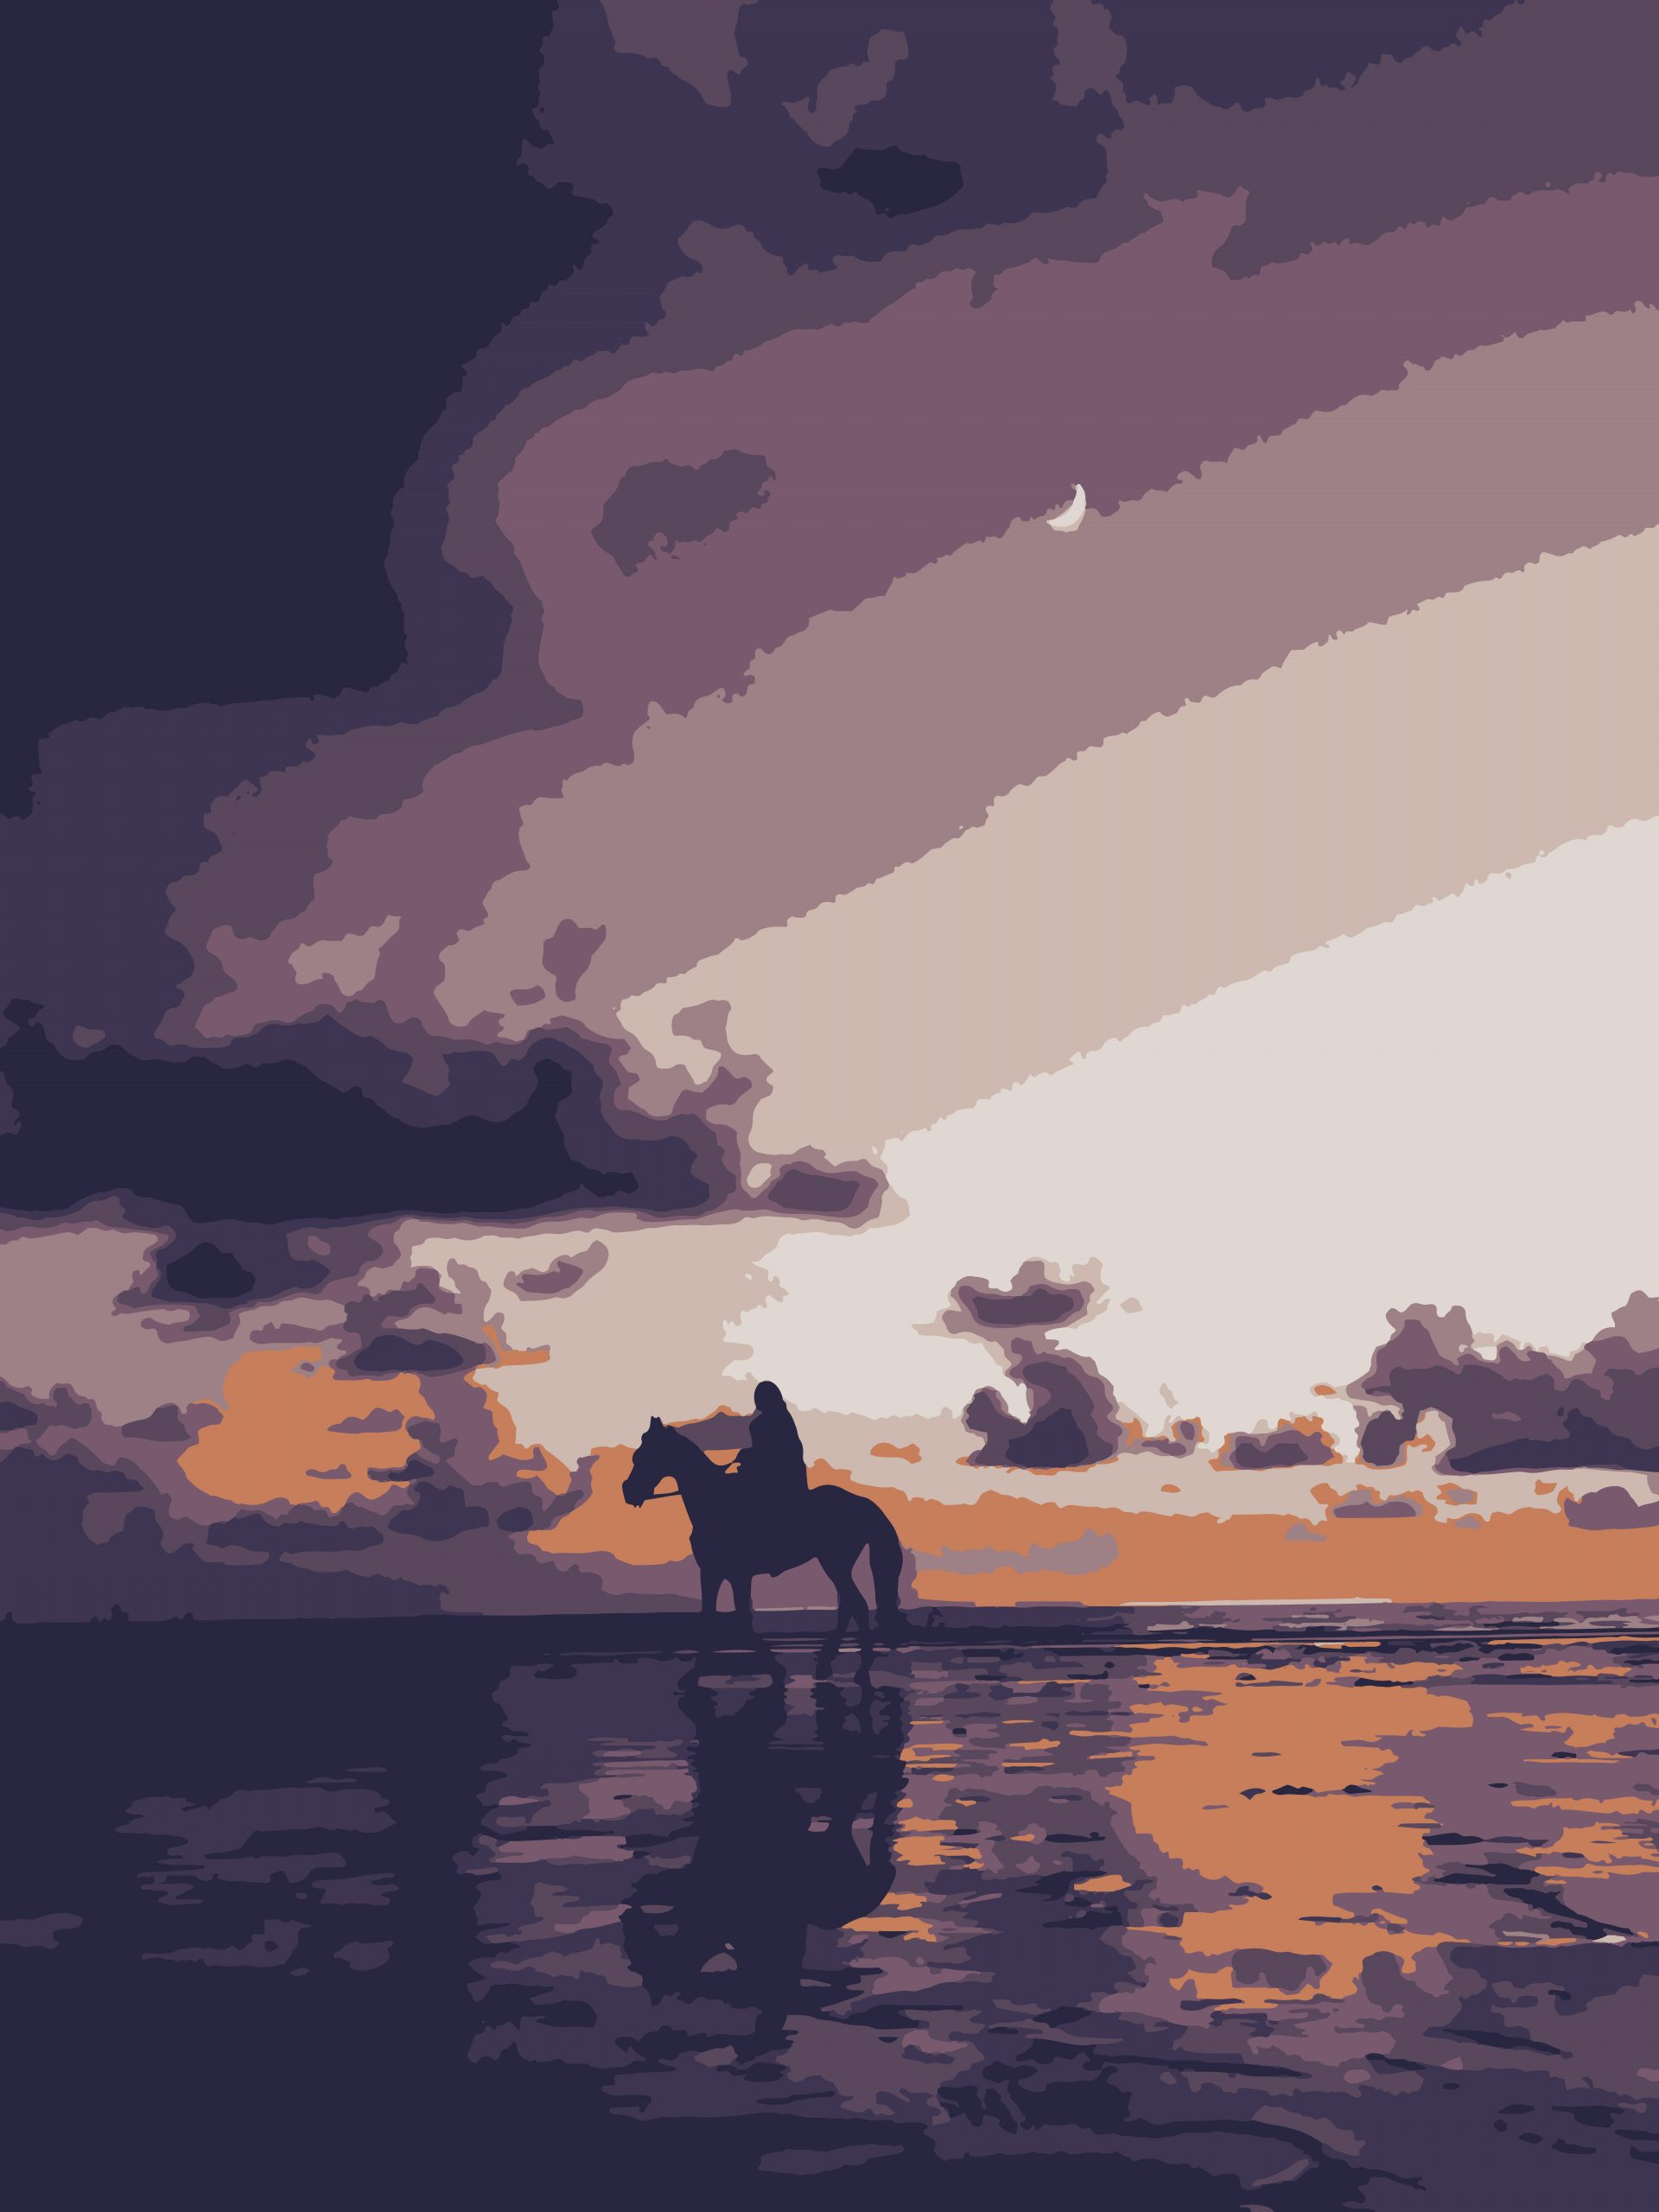 Illustration of a horse rider on a riverbank